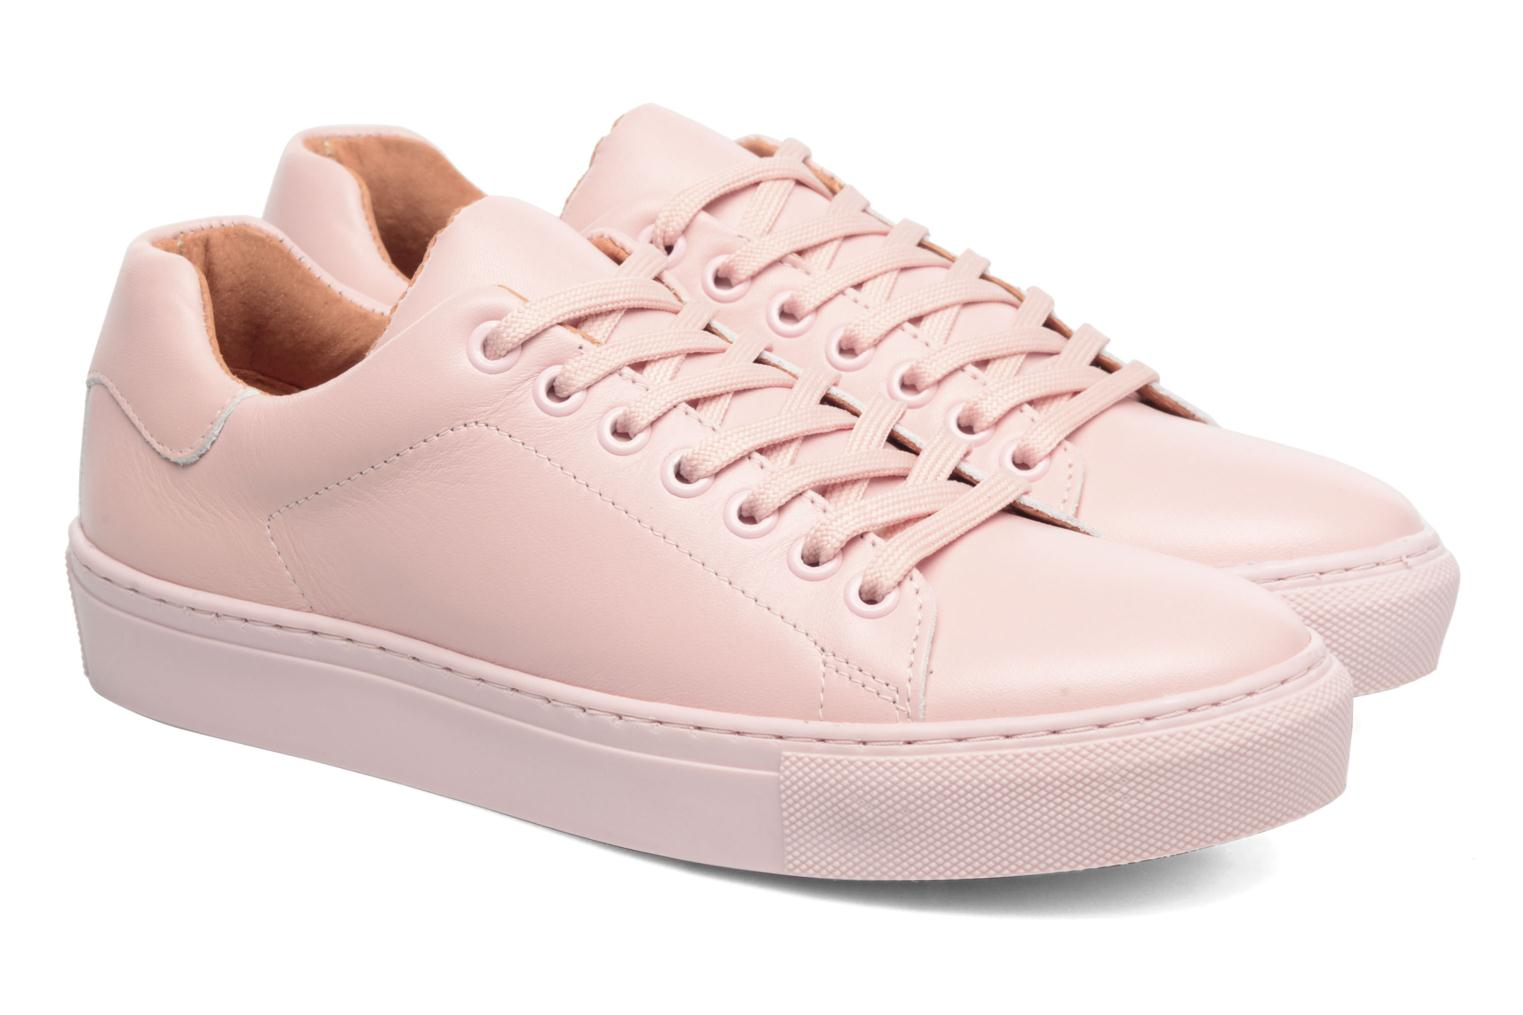 Sugar Shoegar #8 Mestizo lady pink